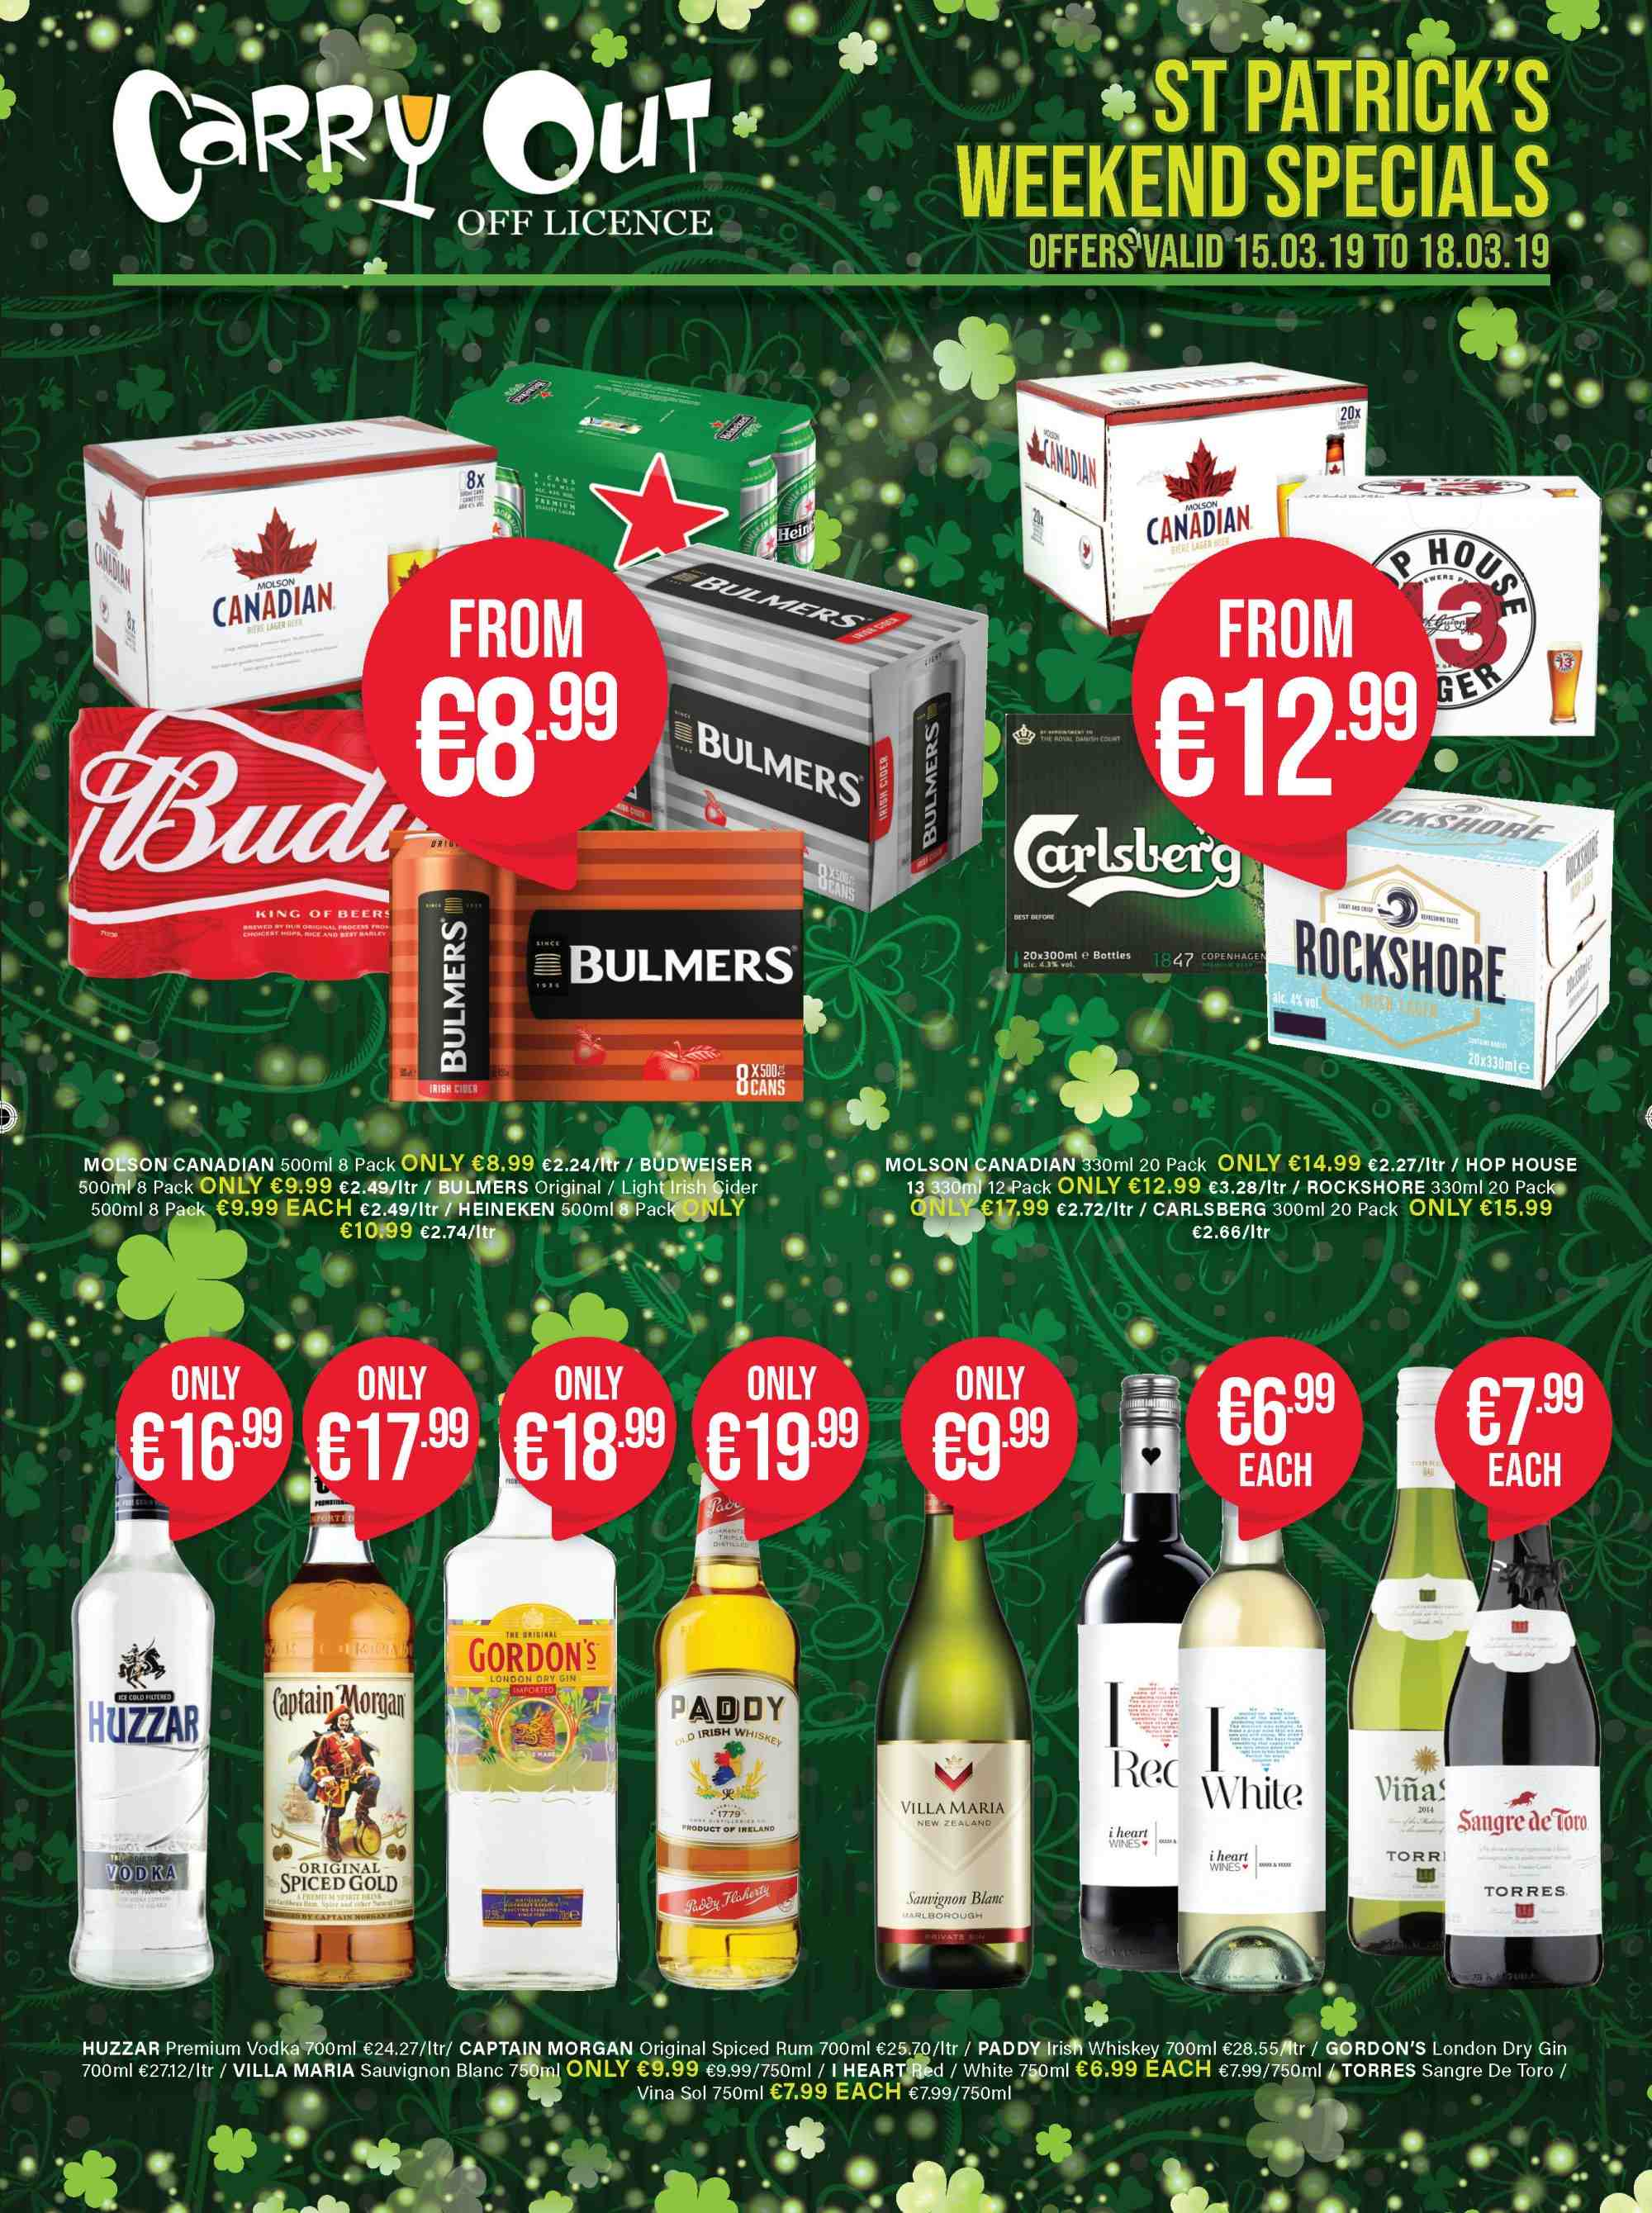 Carry Out offer  - 7.3.2019 - 17.4.2019 - Sales products - beer, captain morgan, gin, rum, spiced rum, vodka, whiskey. Page 1.